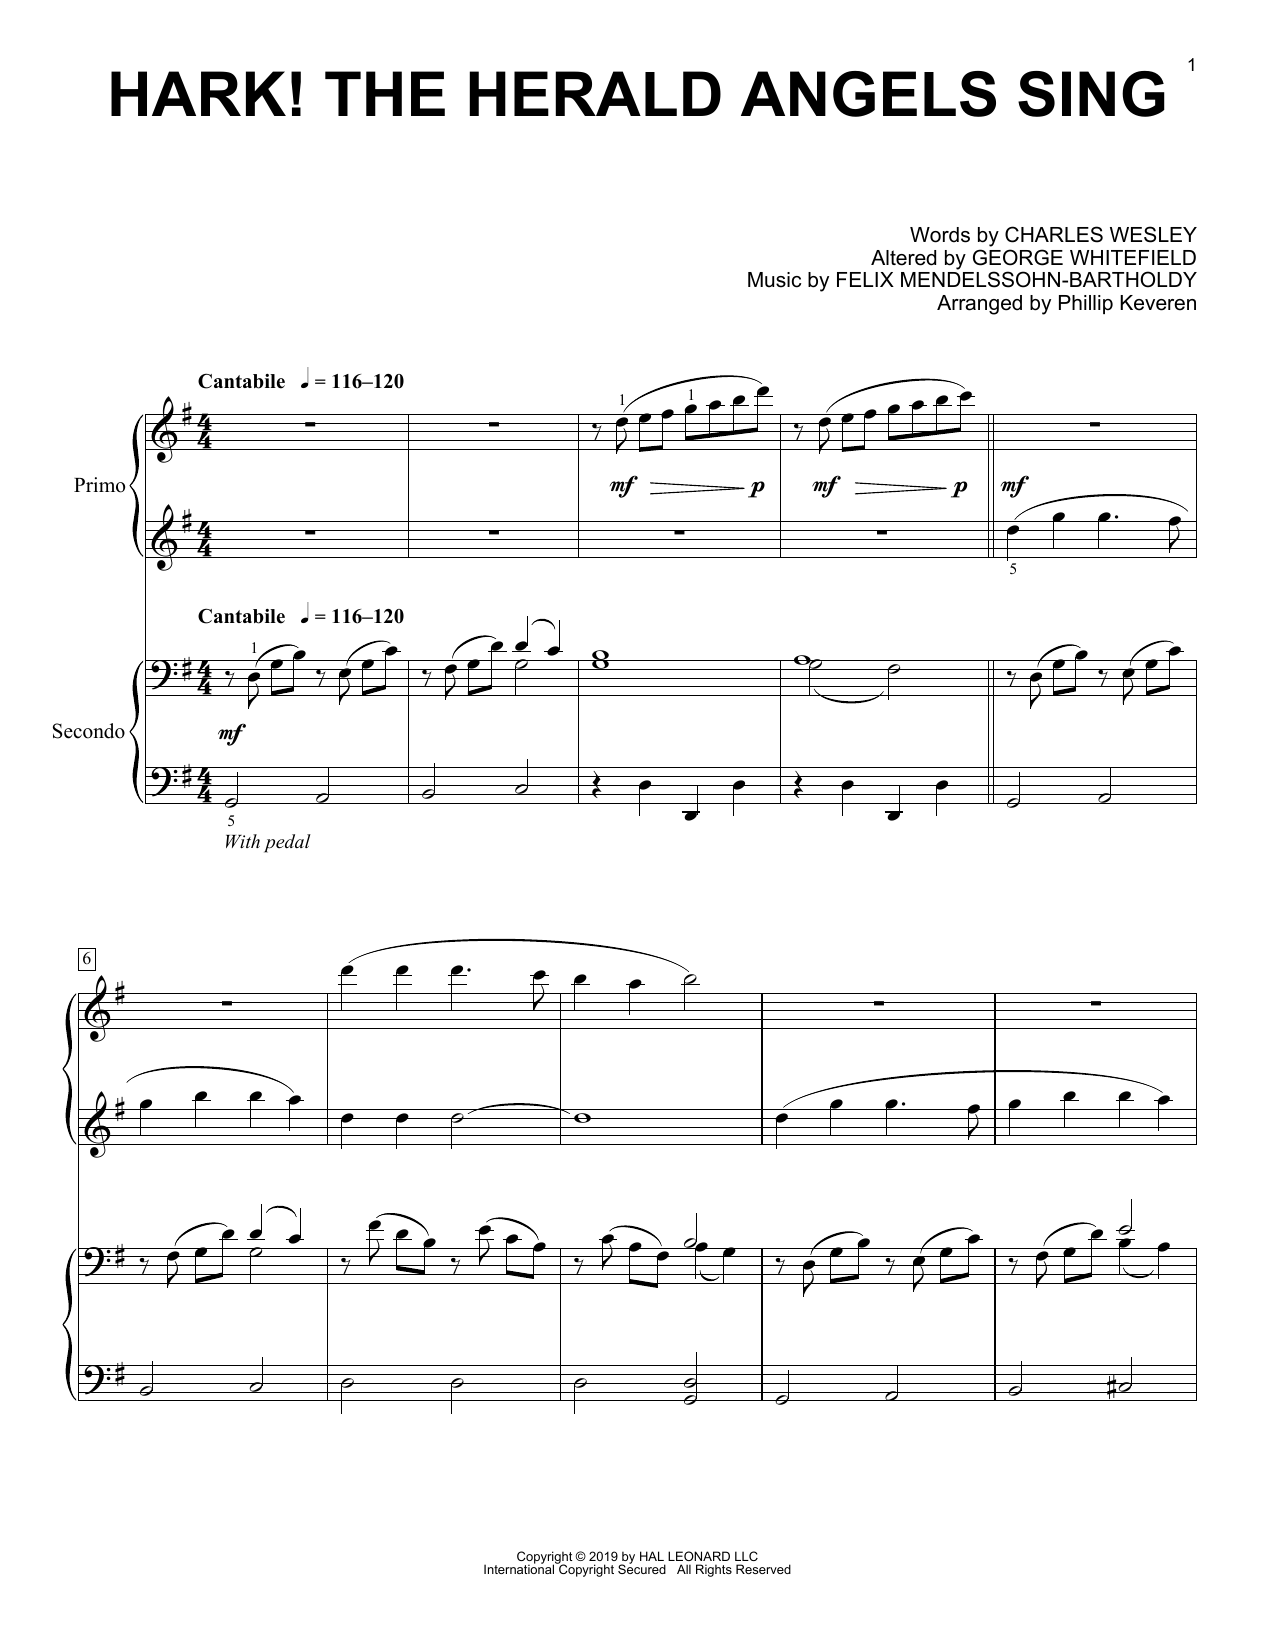 Charles Wesley Hark! The Herald Angels Sing (arr. Phillip Keveren) sheet music notes and chords. Download Printable PDF.